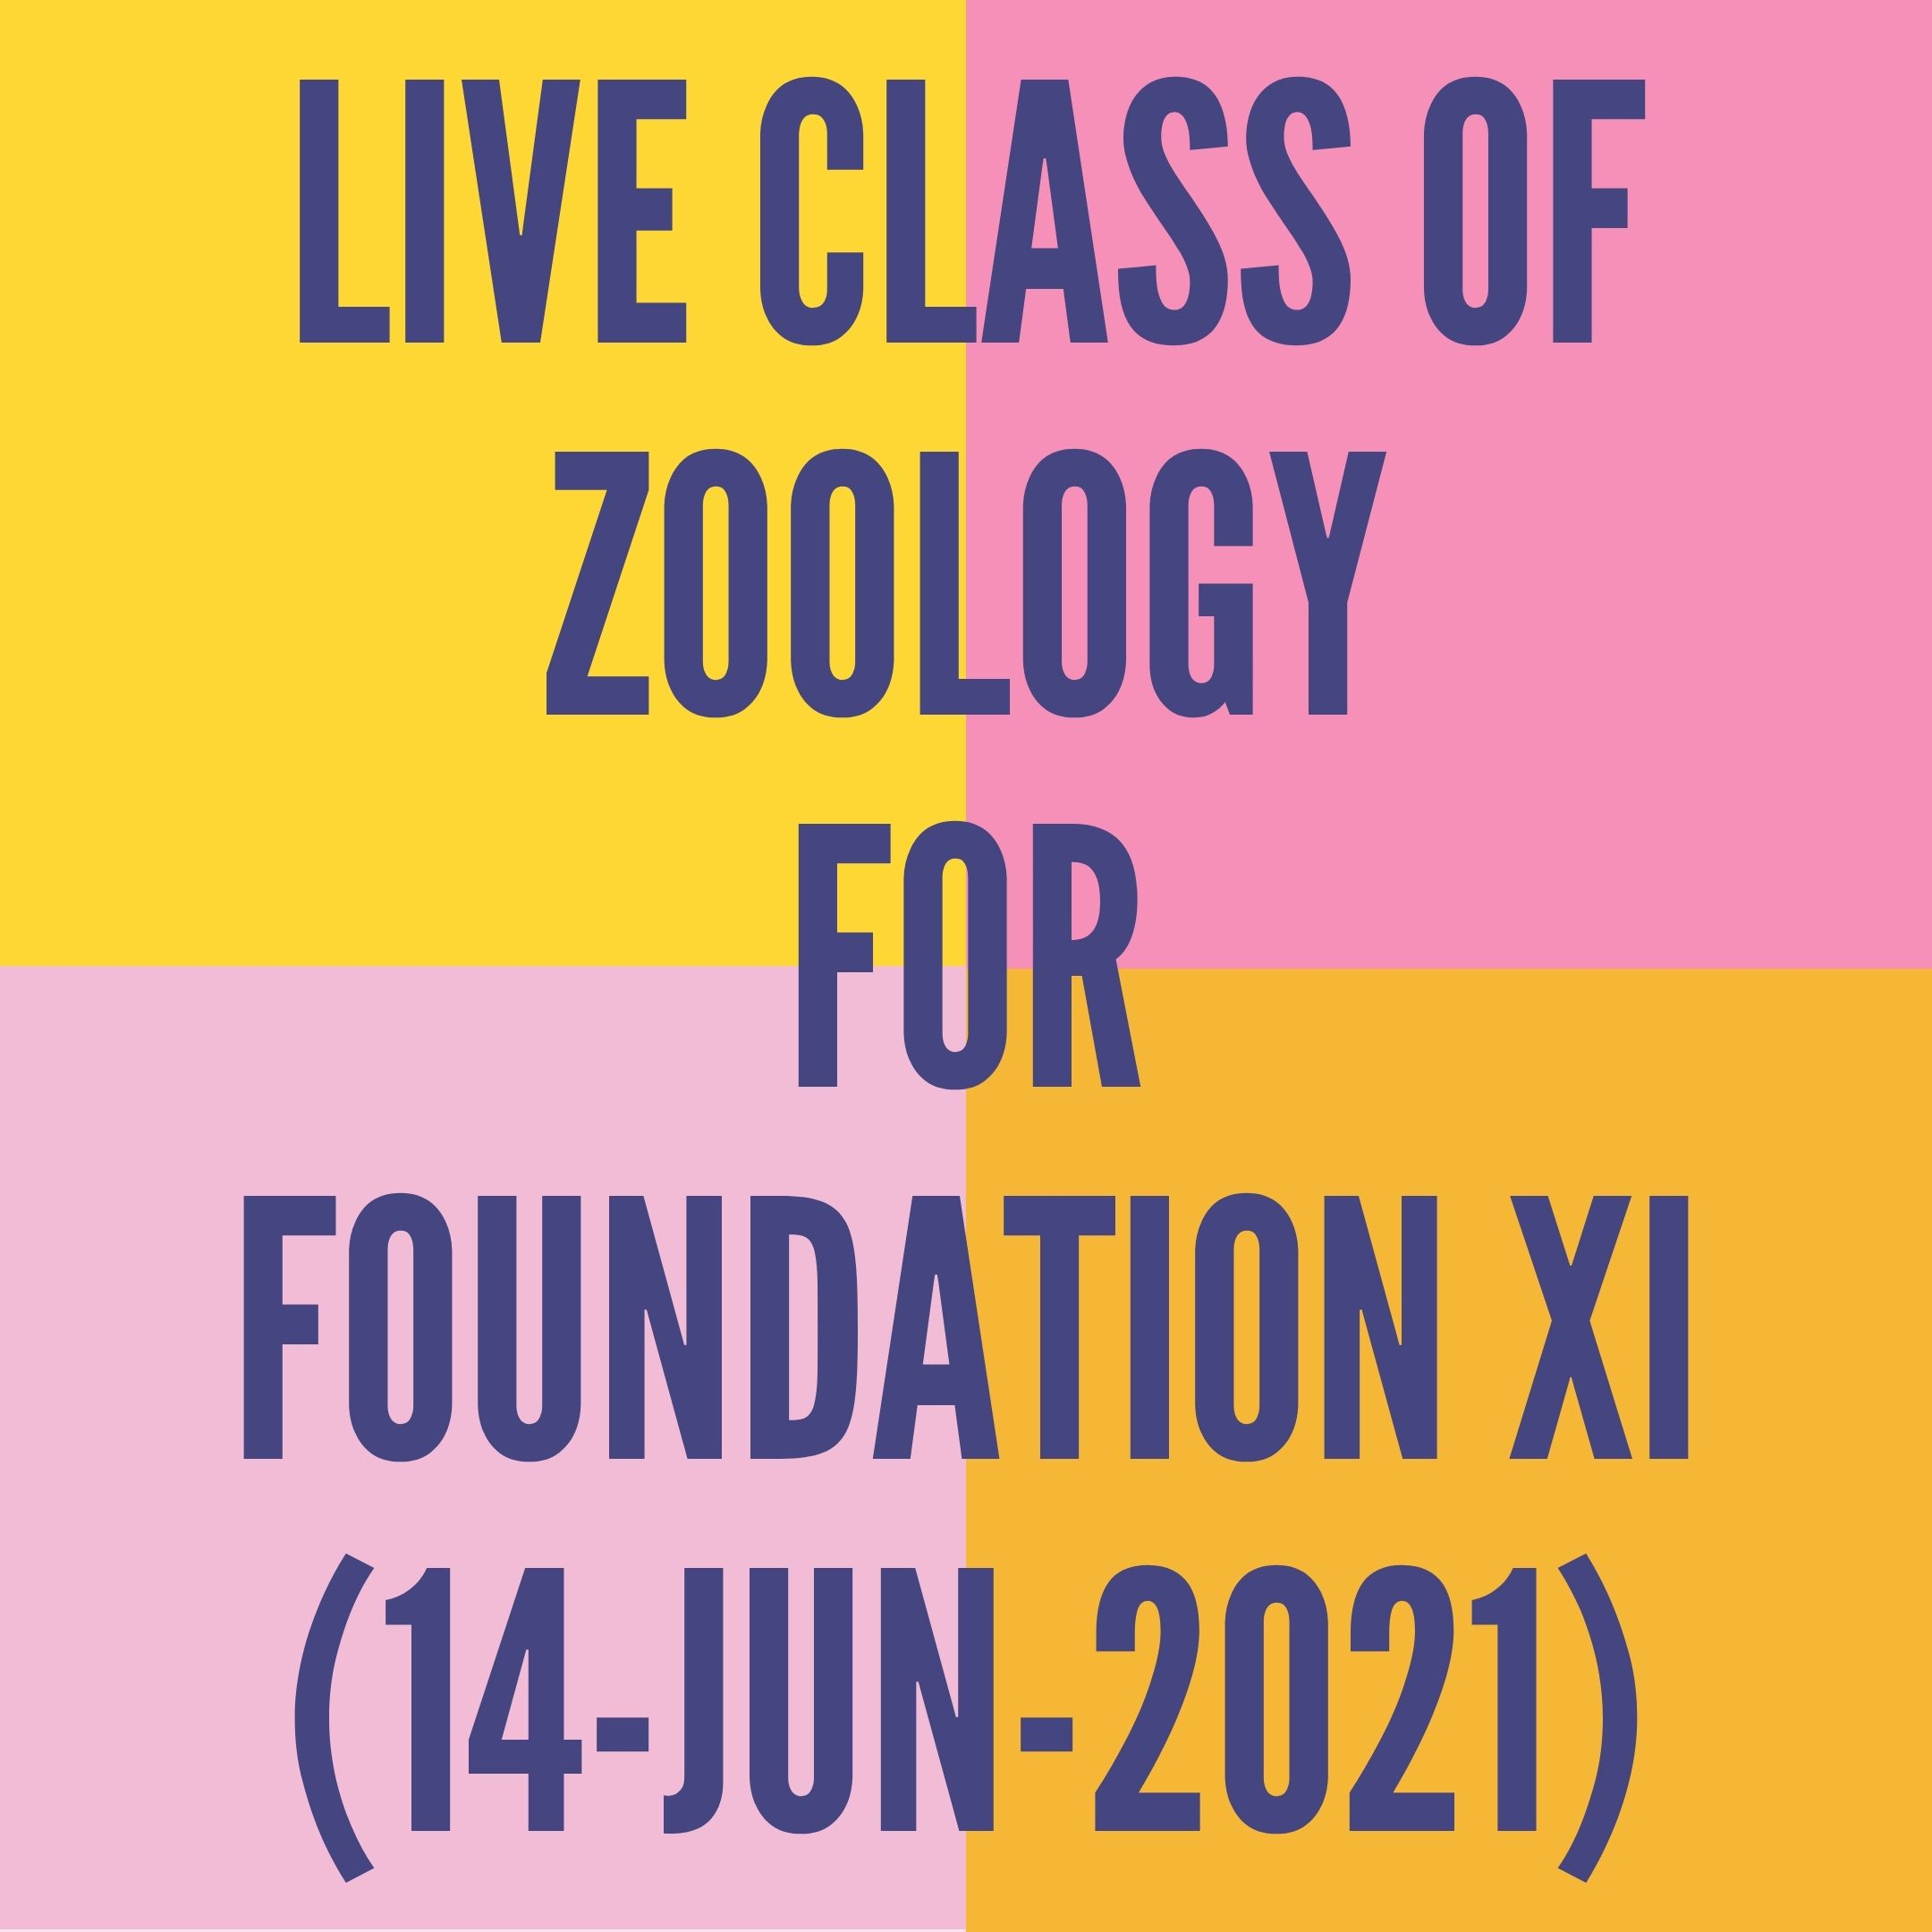 LIVE CLASS OF ZOOLOGY FOR FOUNDATION XI(14-JUN-2021) DIGESTIVE SYSTEM